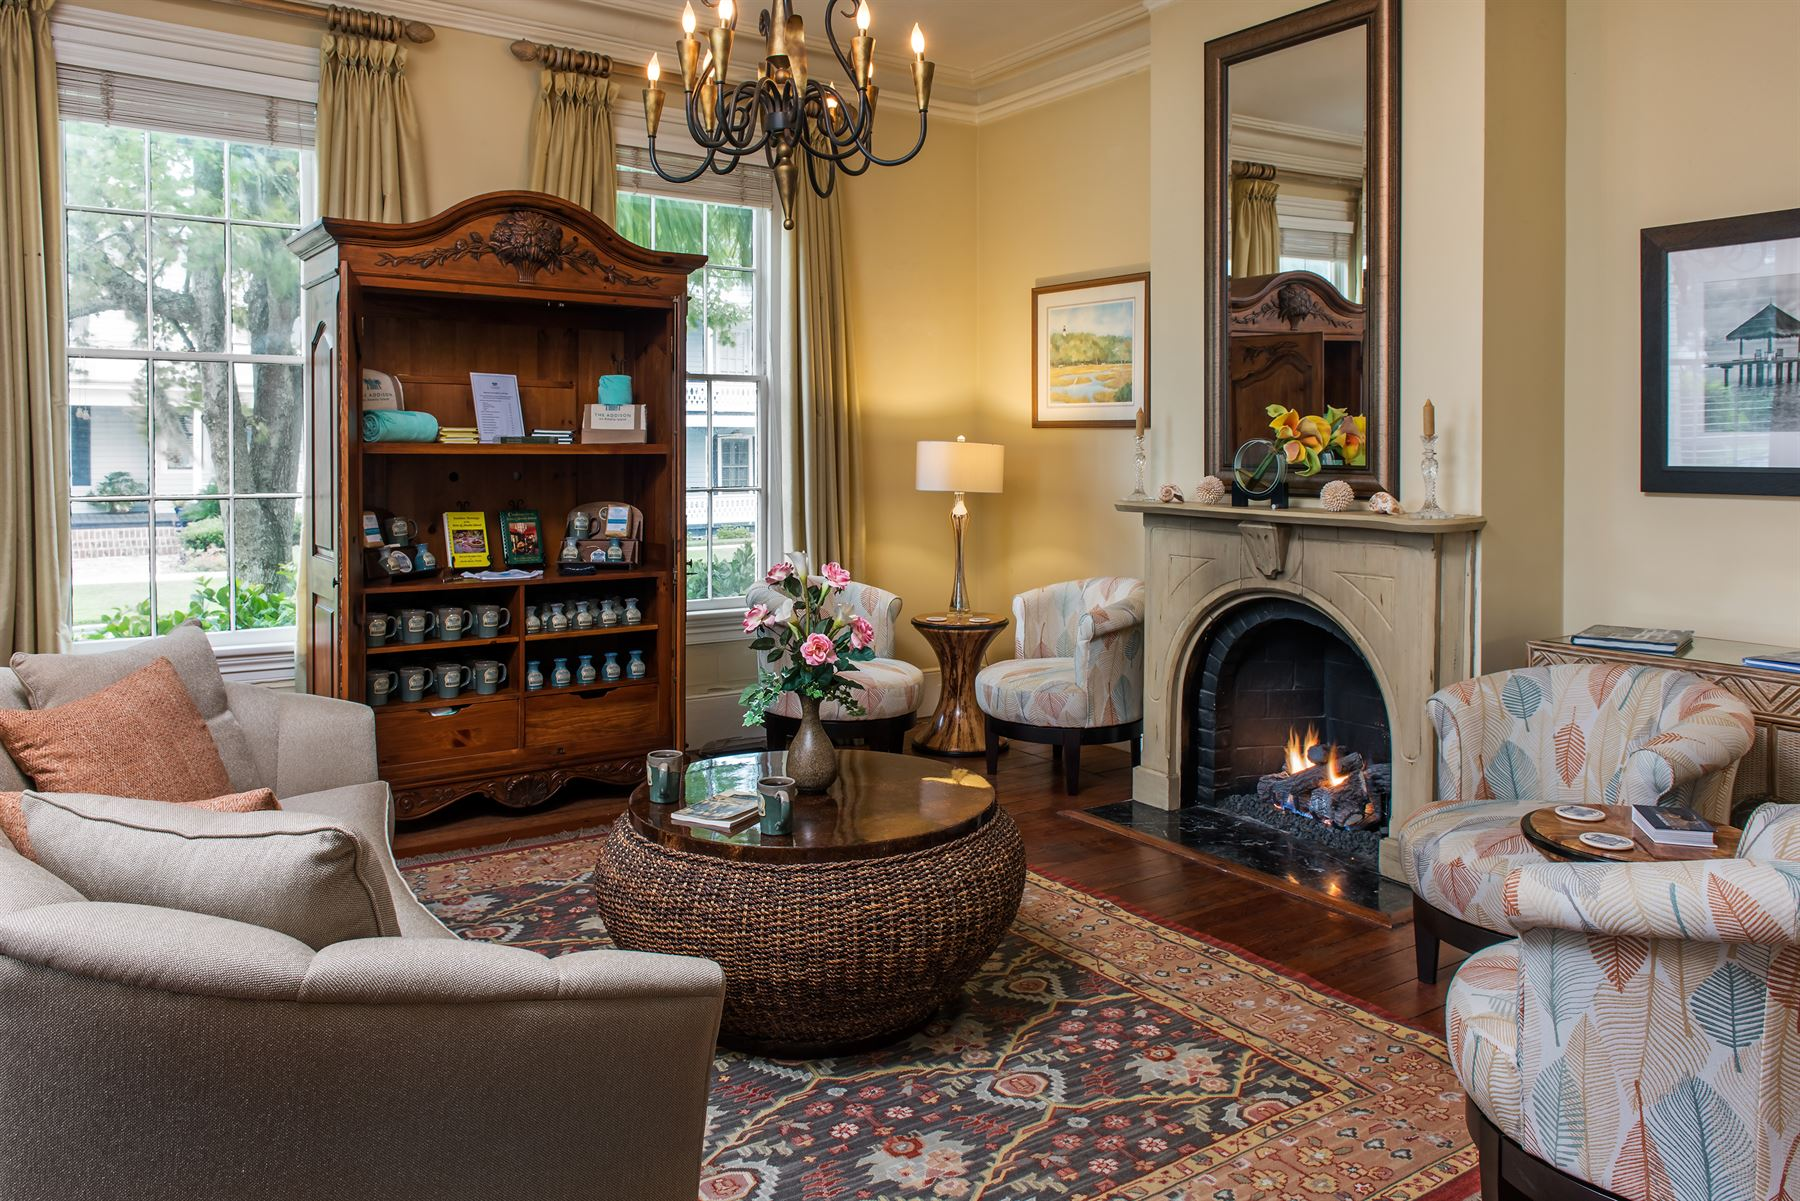 The Parlor at The Addison on Amelia Island